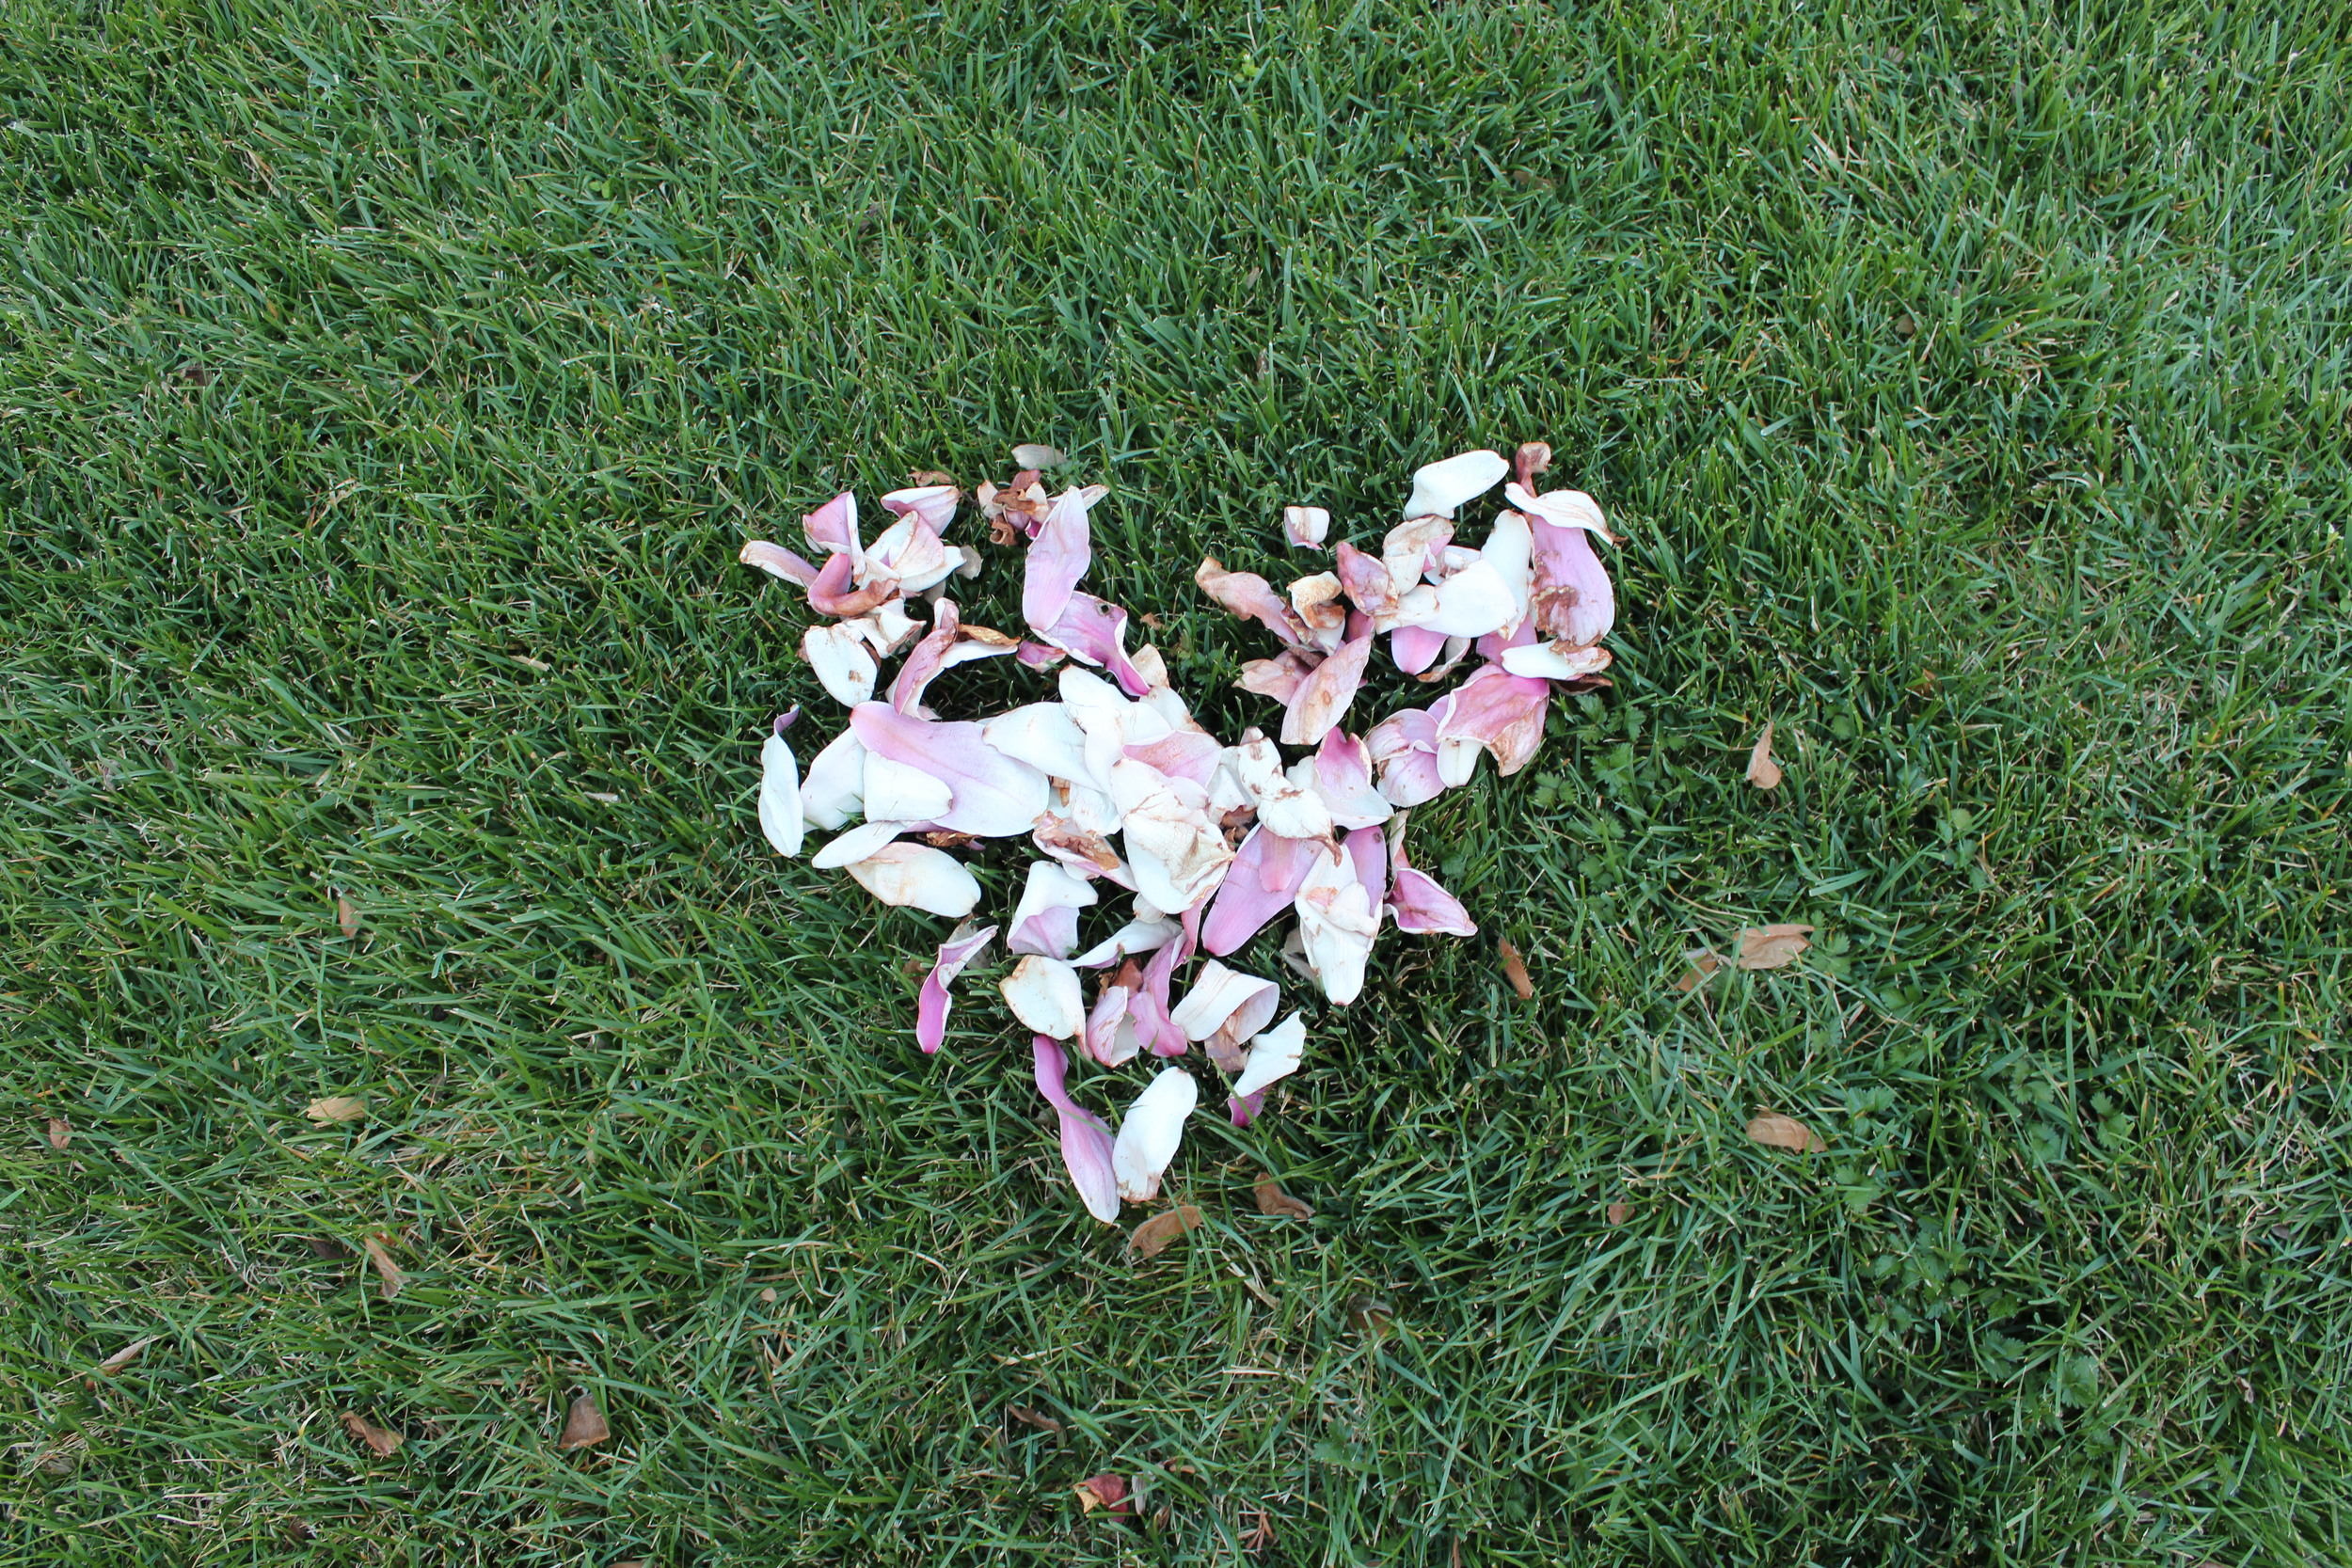 A heart in cherry blossom petals